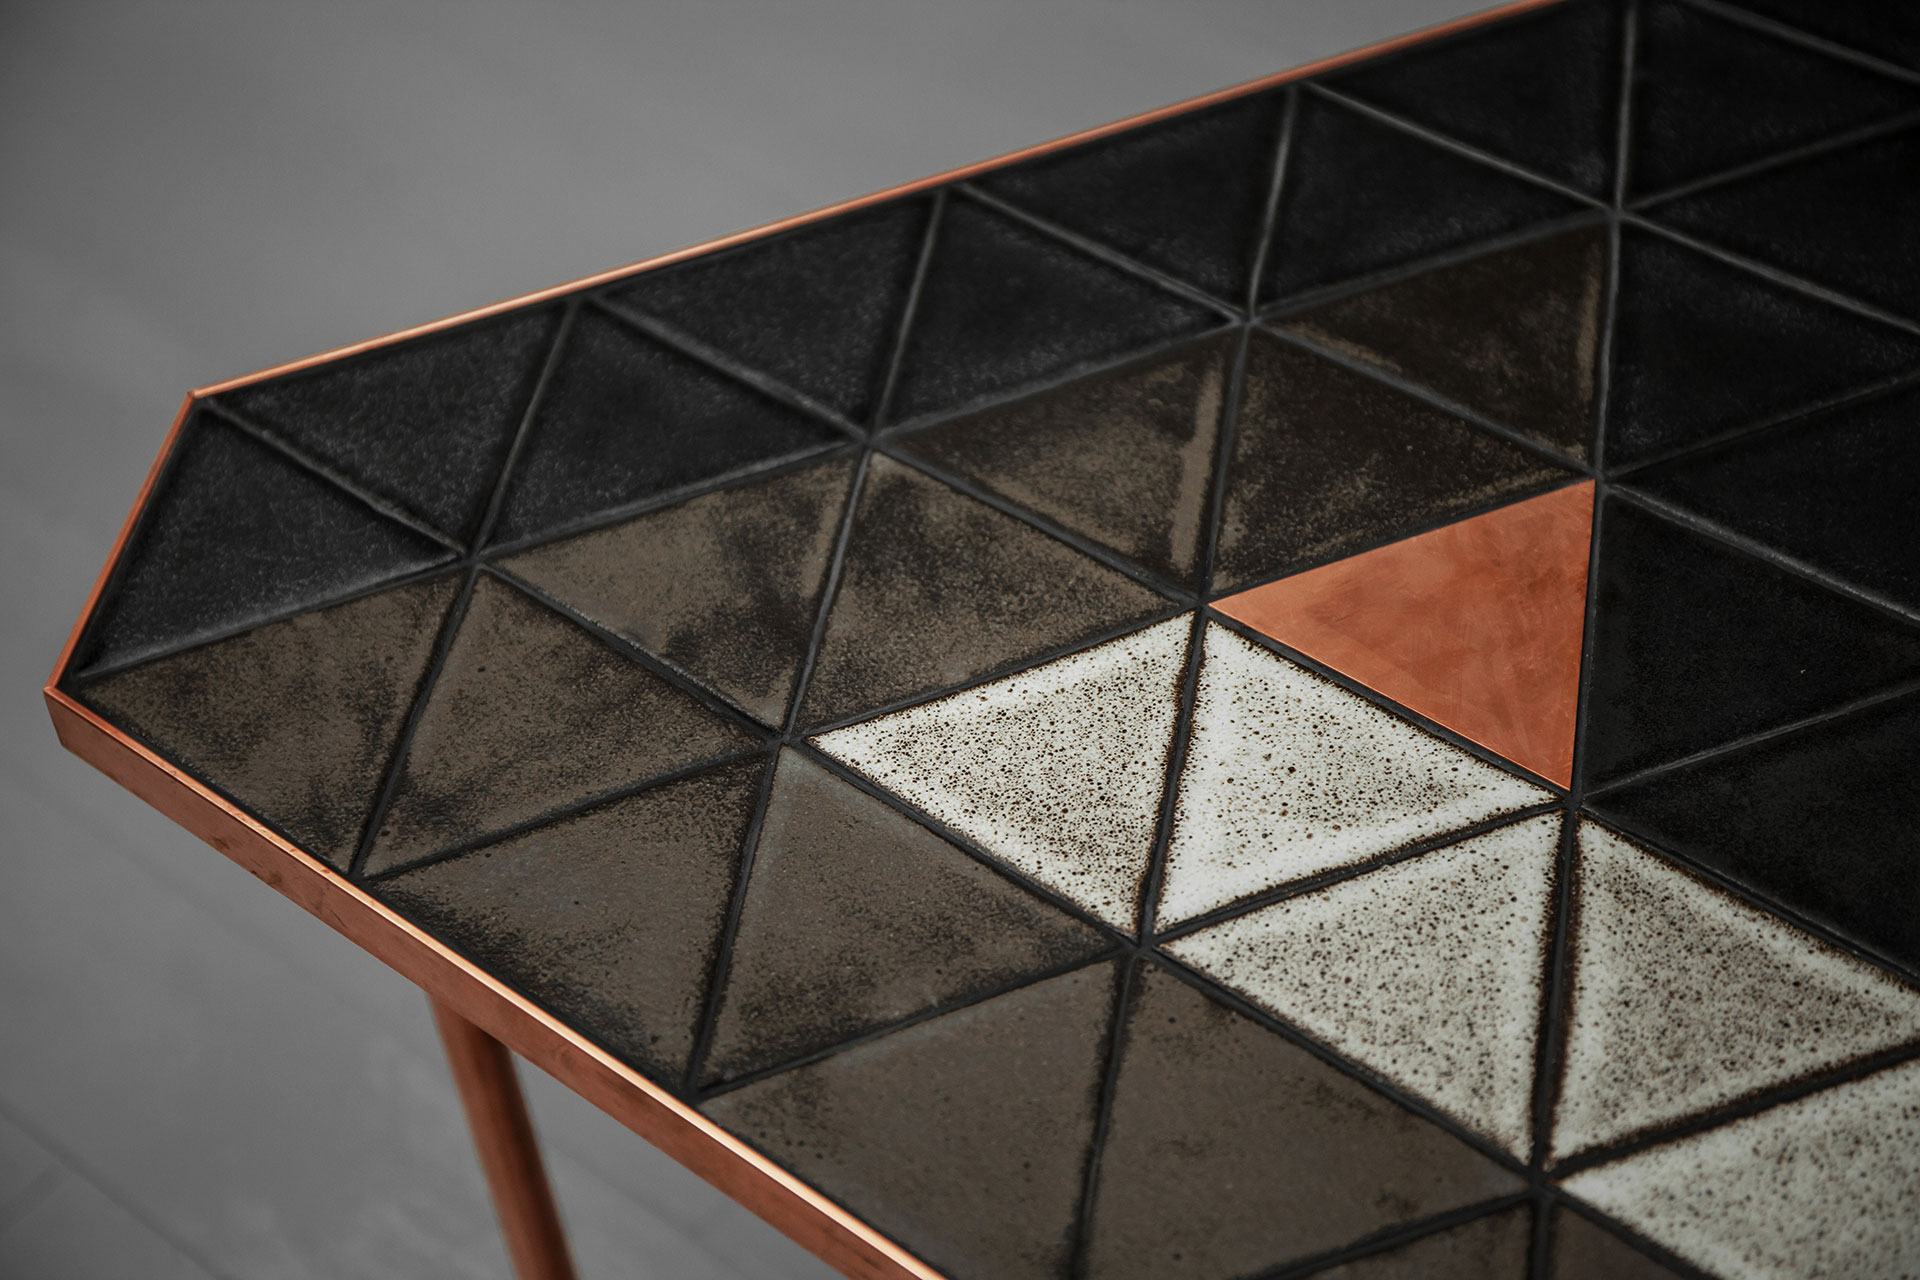 Handmade ceramic tiles top and copper triangle